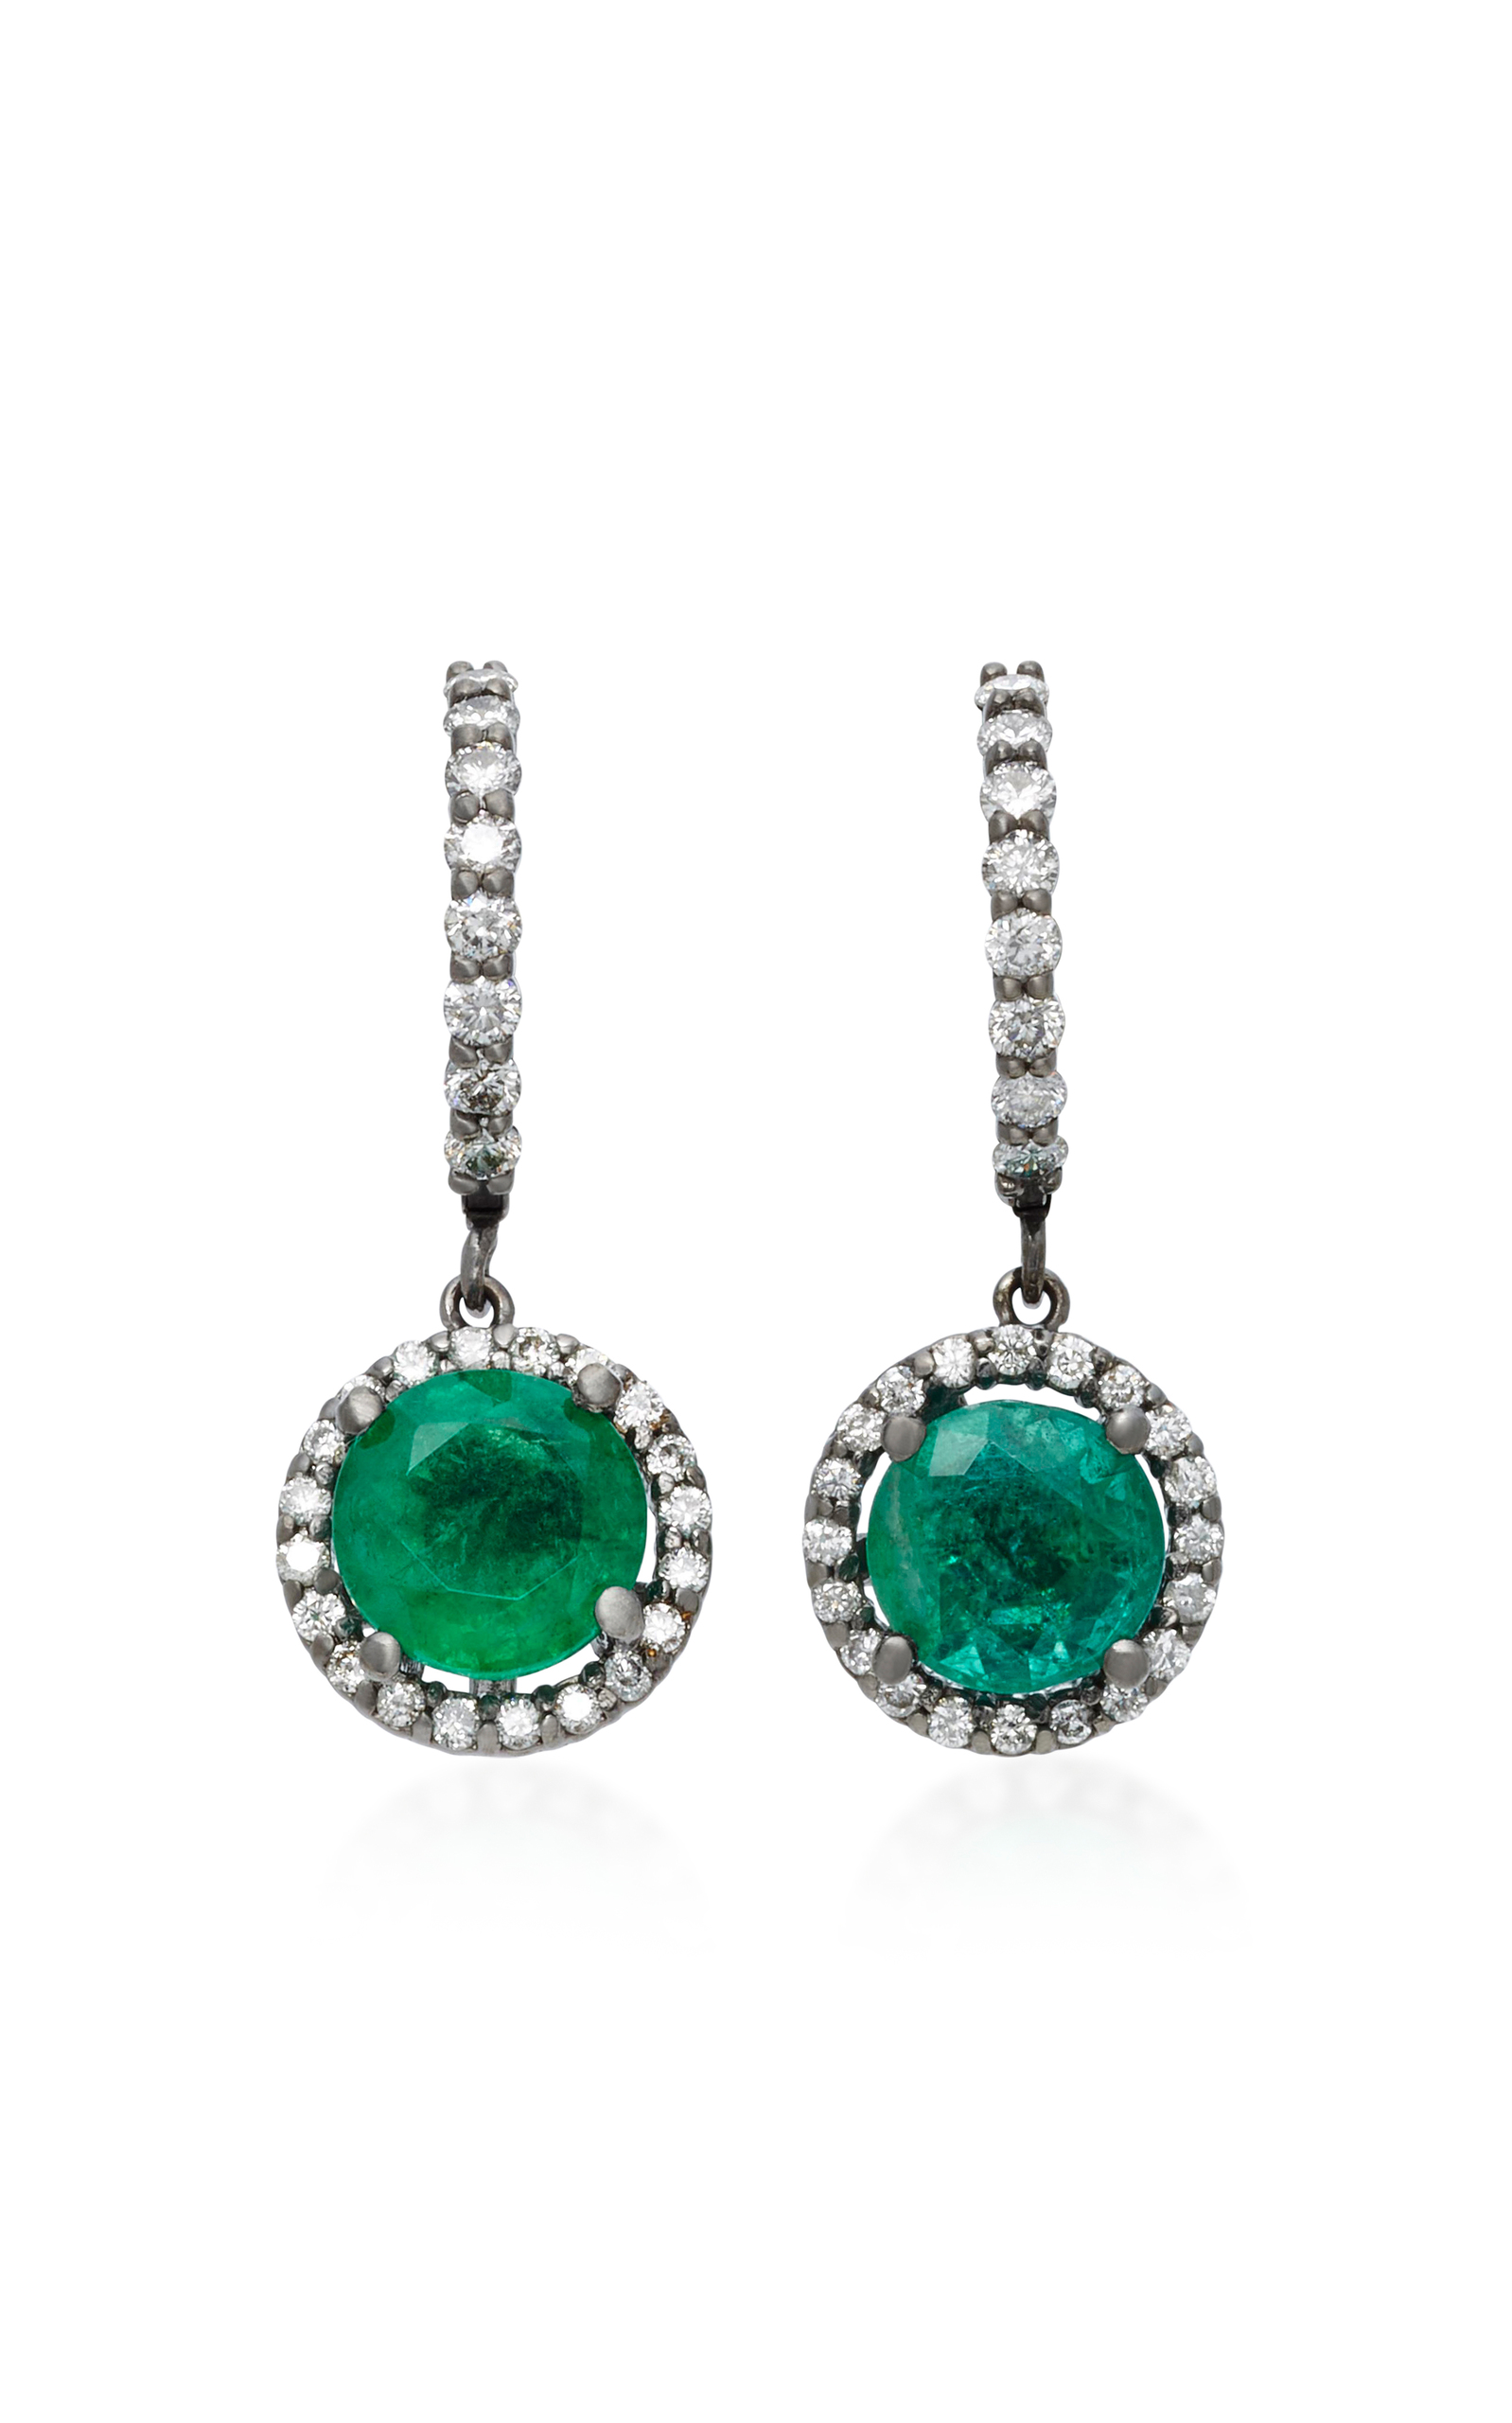 COLETTE JEWELRY PLANET 18K WHITE GOLD DIAMOND AND EMERALD EARRINGS